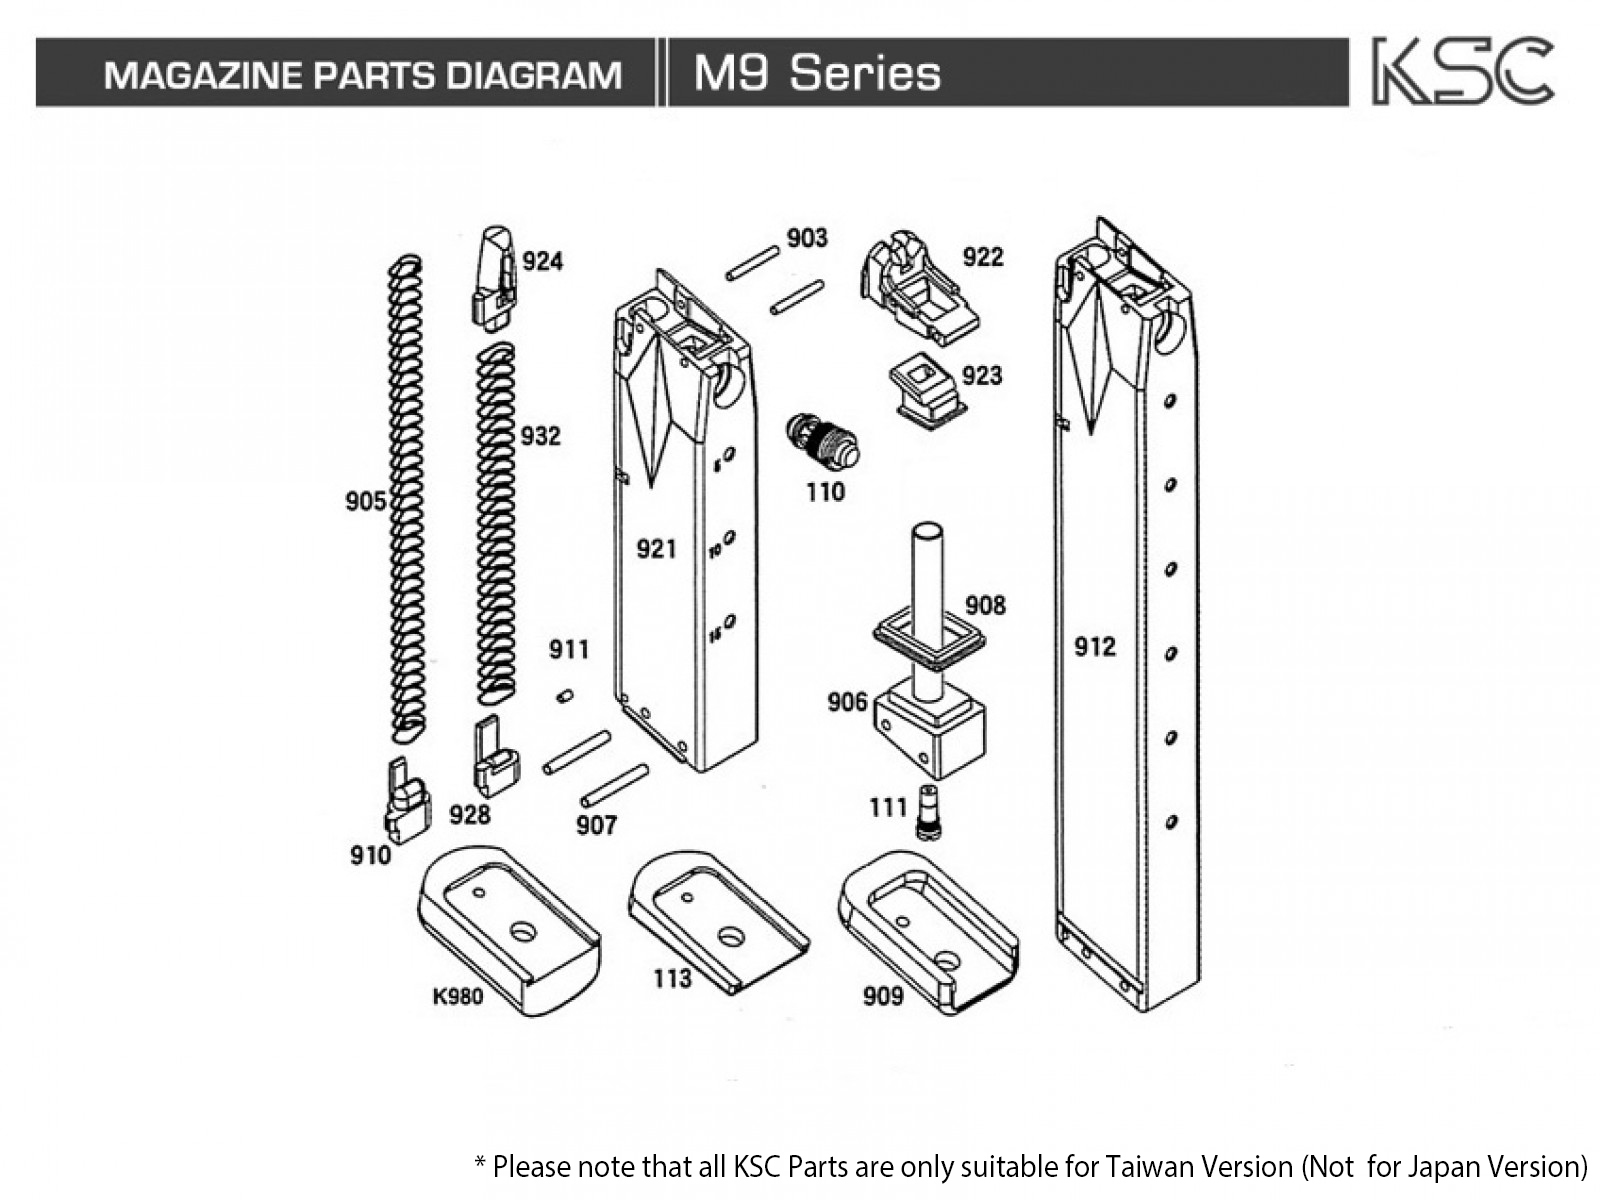 ksc m9 parts | rainbow8 company m9 parts diagram reese fifth wheel hitch parts diagram #7